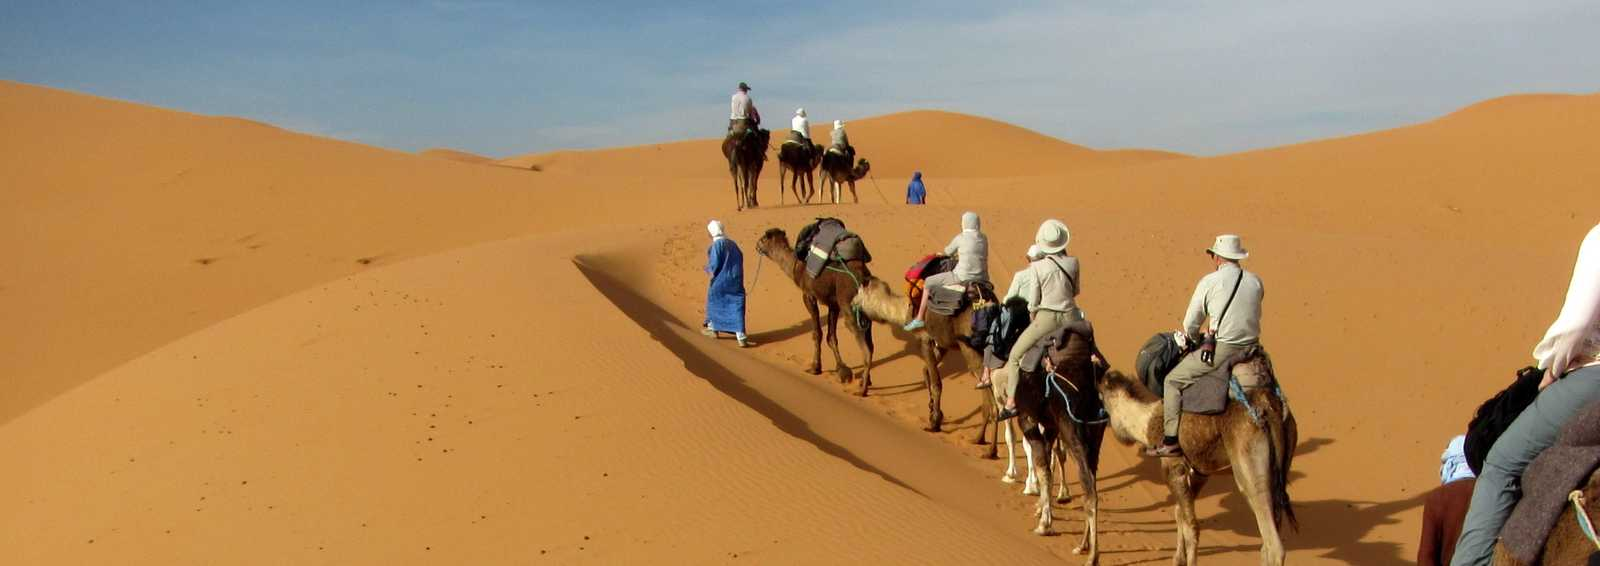 Camel ride in the Sahara Desert, Morocco